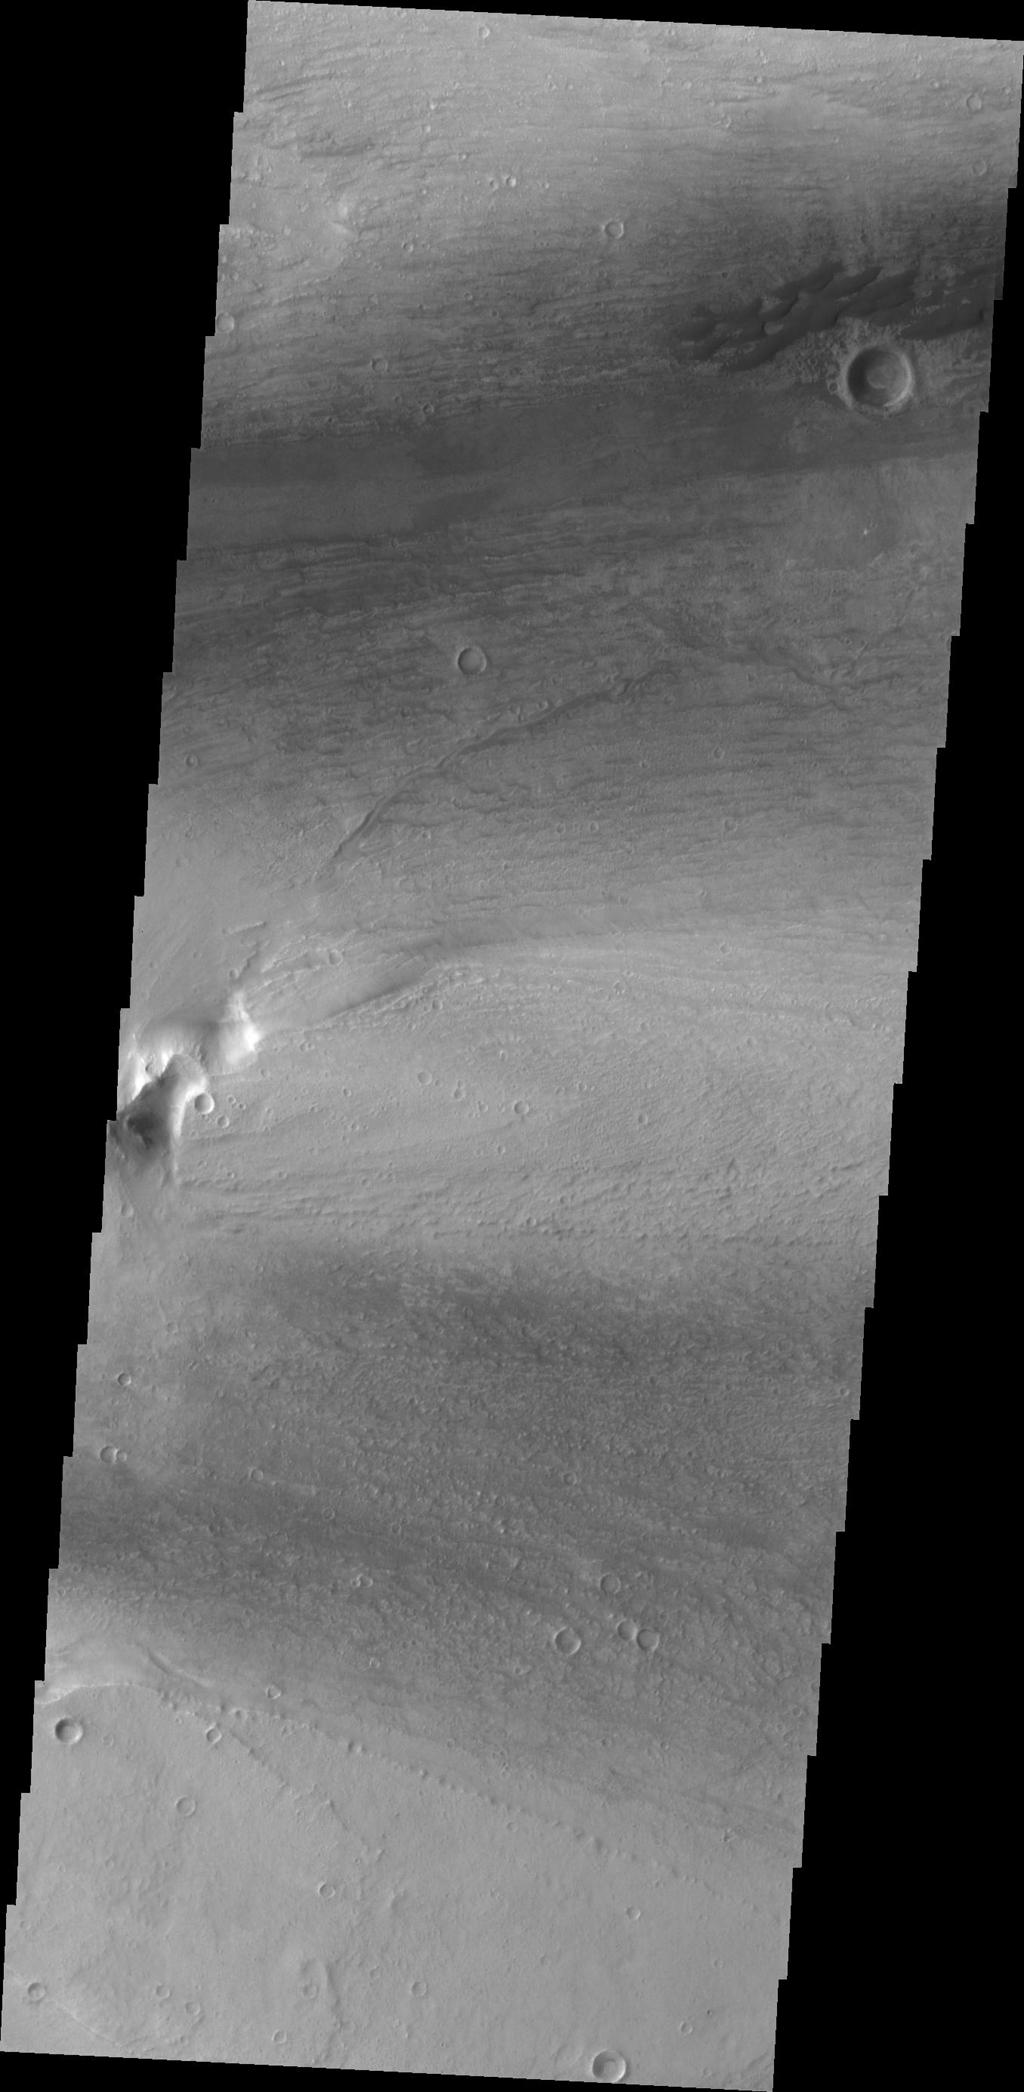 This small group of dunes in located within Kasei Valles. This image from NASA's Mars Odyssey was captured on June 16, 2010.